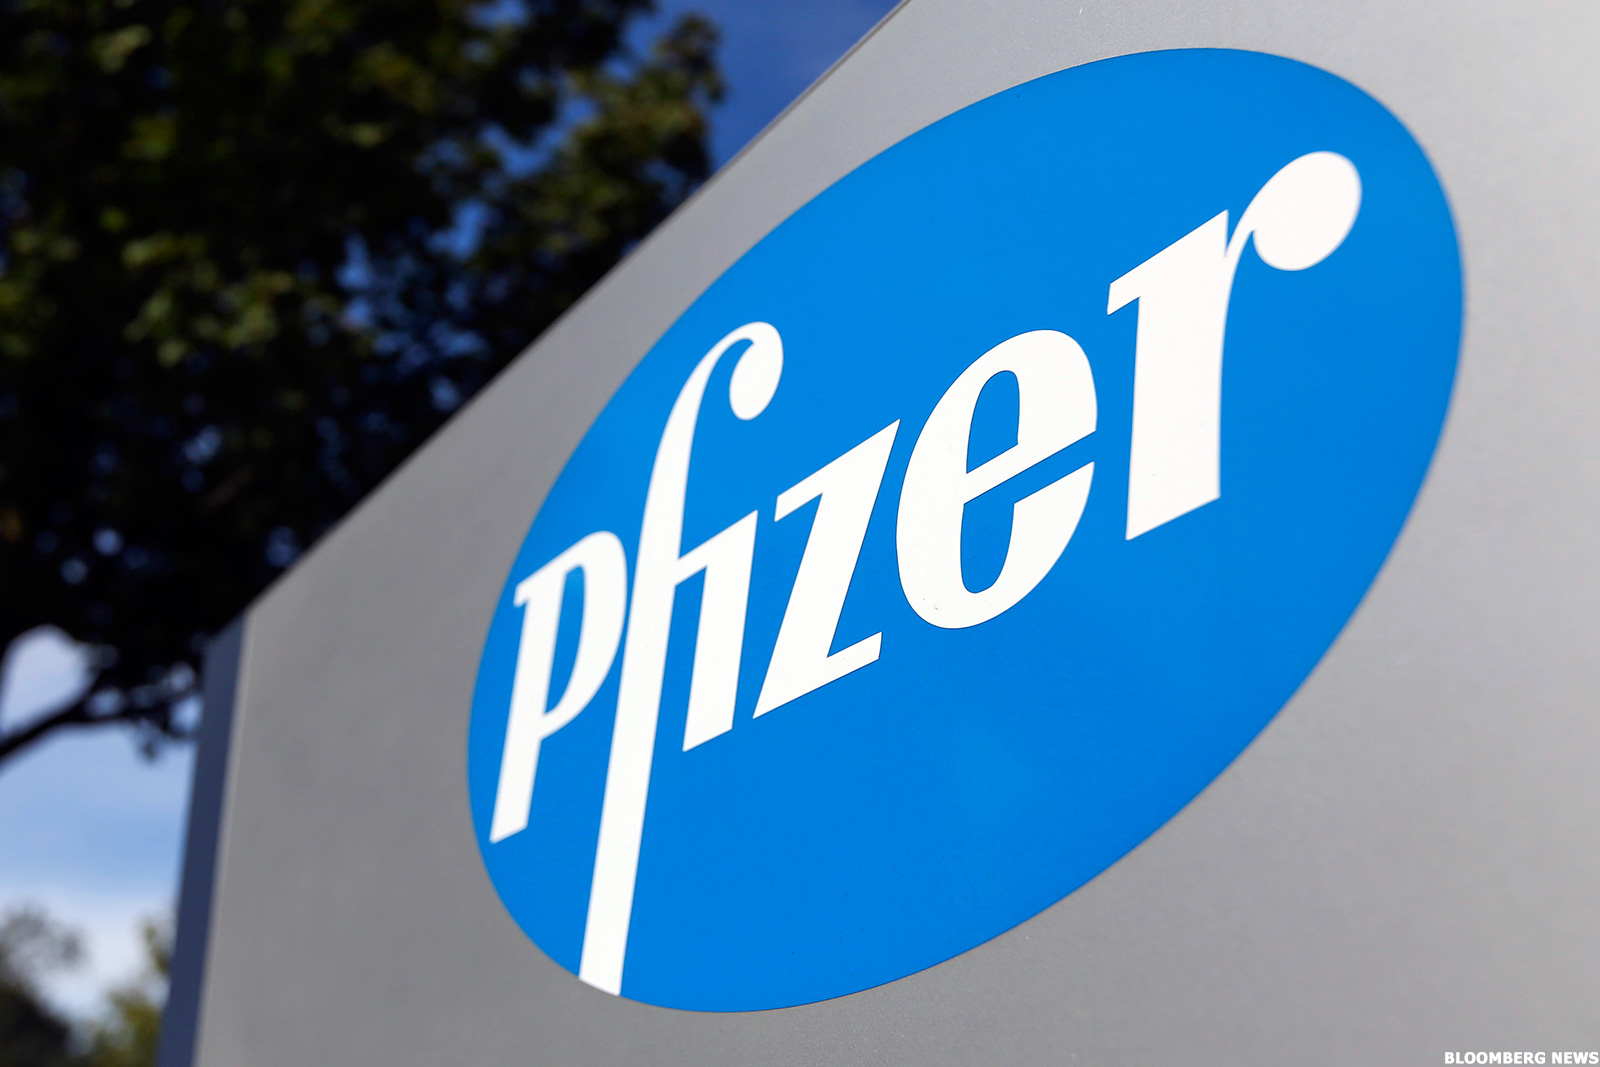 Pfizer Pfe Stock Gains On China Investment Thestreet